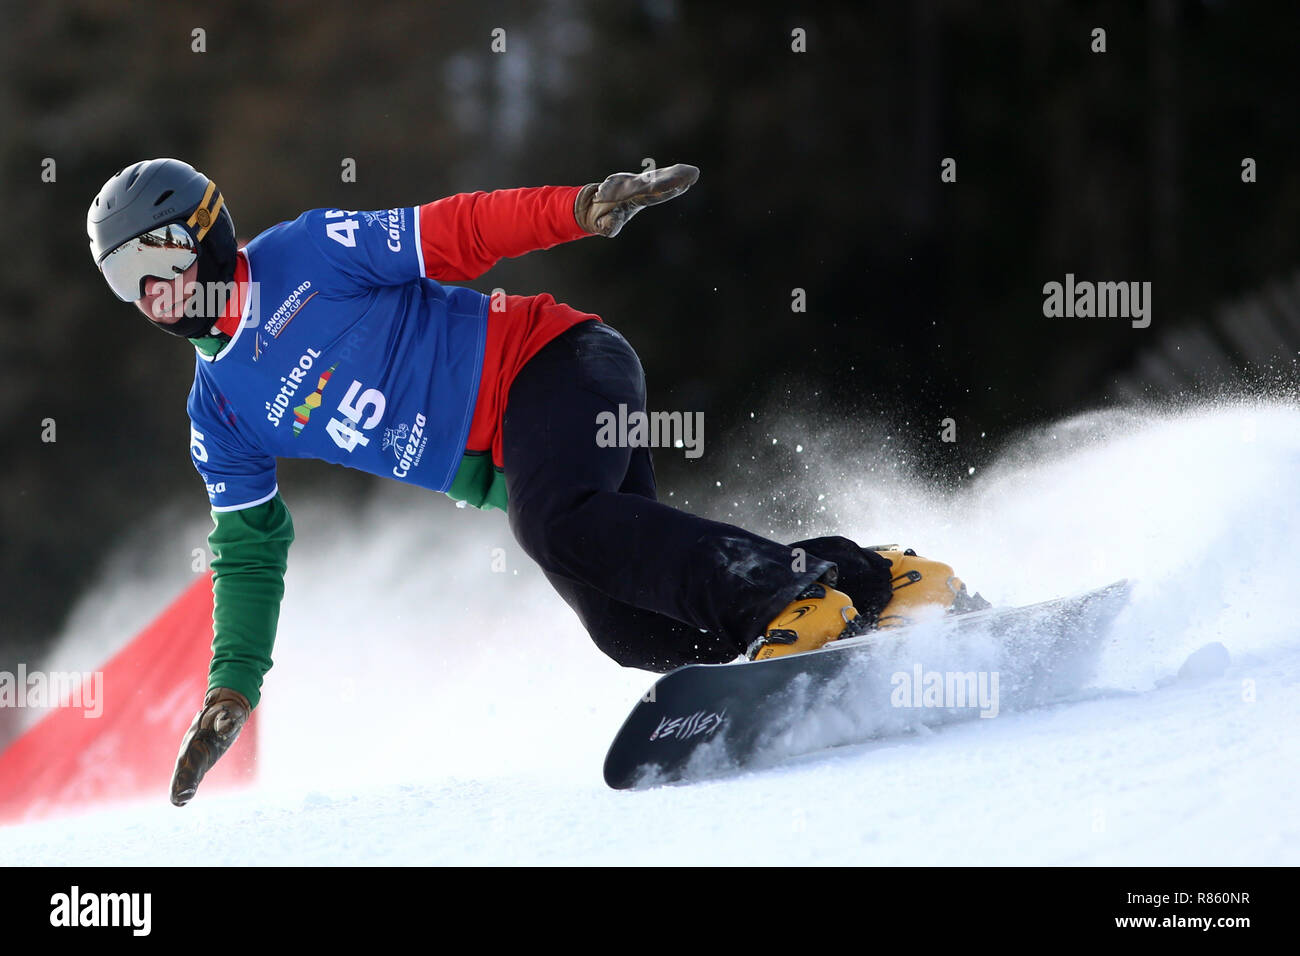 Val di Fassa, Trentino, Italy. 13th December 2018, Carezza, Val di Fassa, Trentino, Italy; FIS Snowboarding World Cup; Parallel Giant Slalom, Chris De Olivera POR Credit: Action Plus Sports Images/Alamy Live News - Stock Image